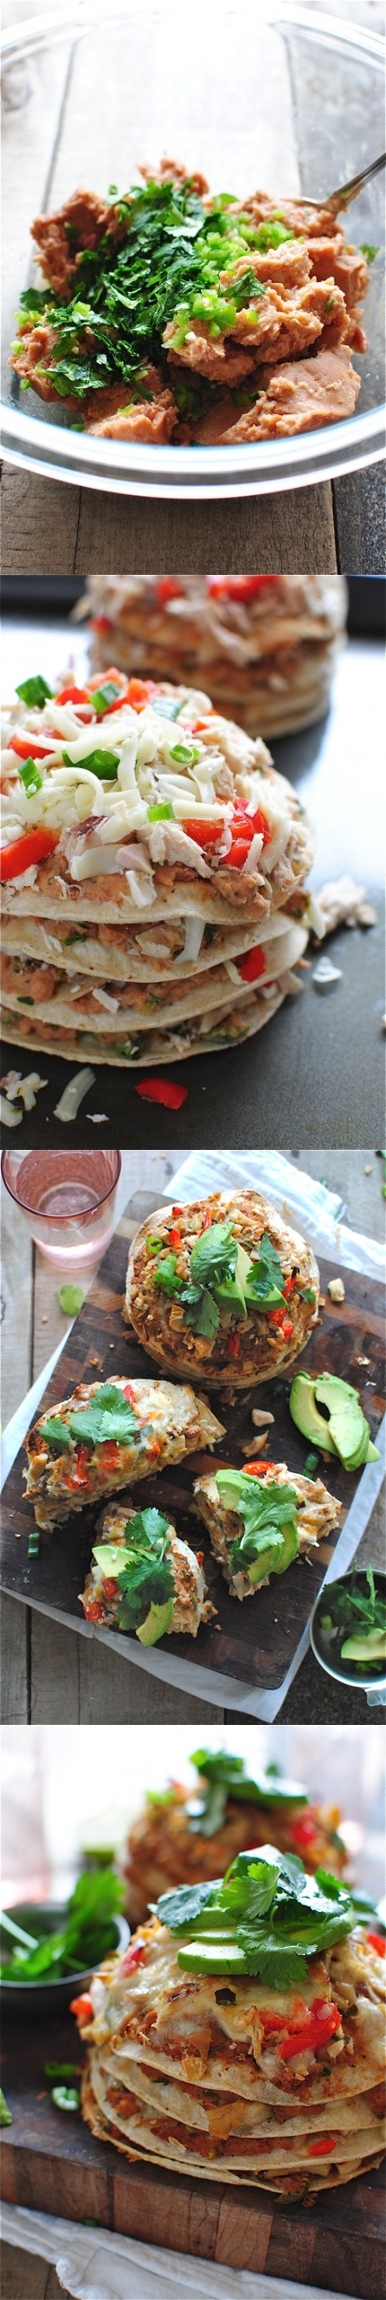 Chicken-Taco-Stacks-Recipe